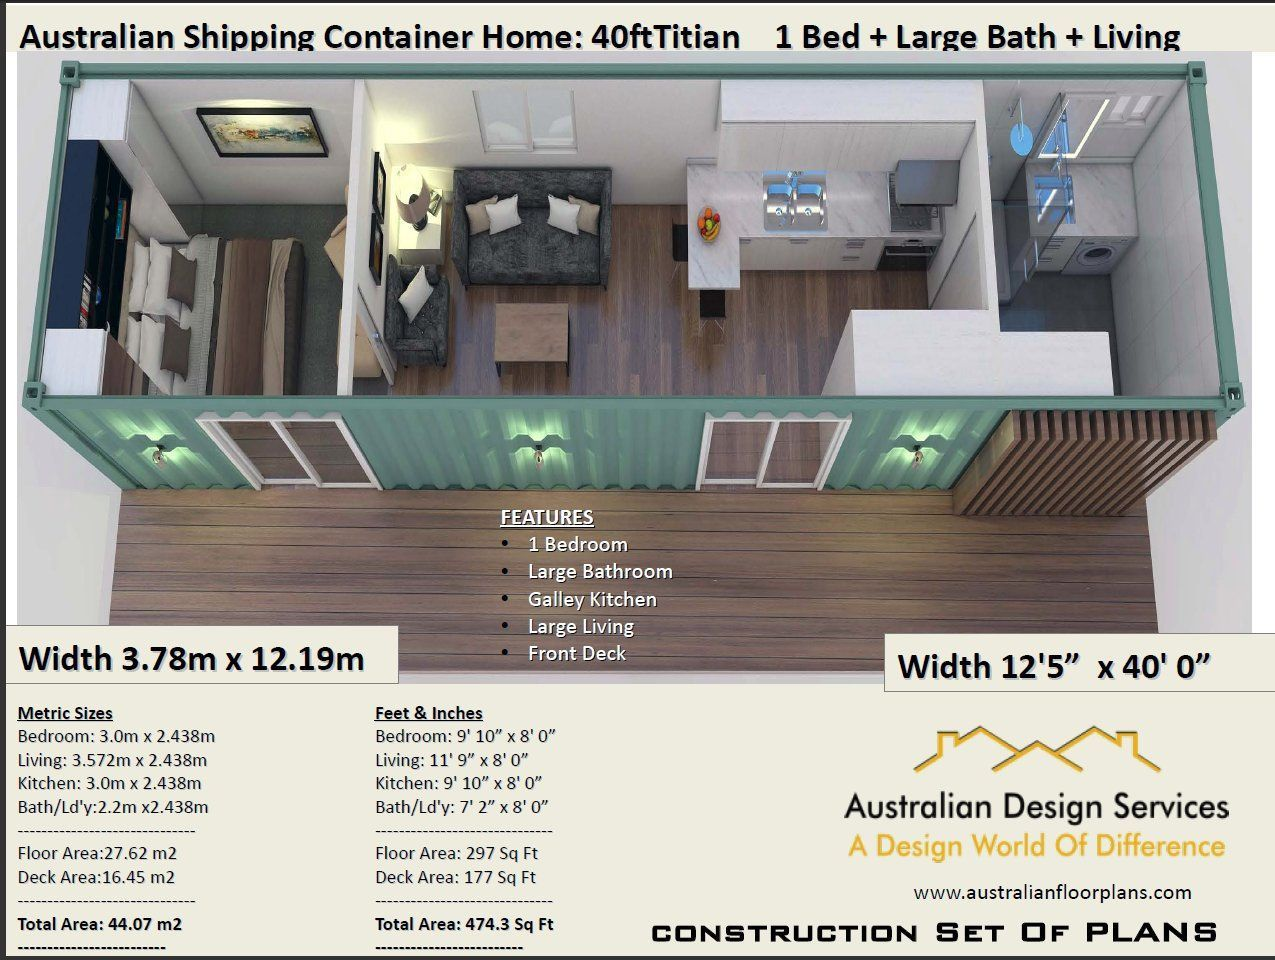 40 Foot Shipping Container Home Full Construction House Plans Blueprints Usa Feet In 2020 Container House Shipping Container Home Designs Container House Design